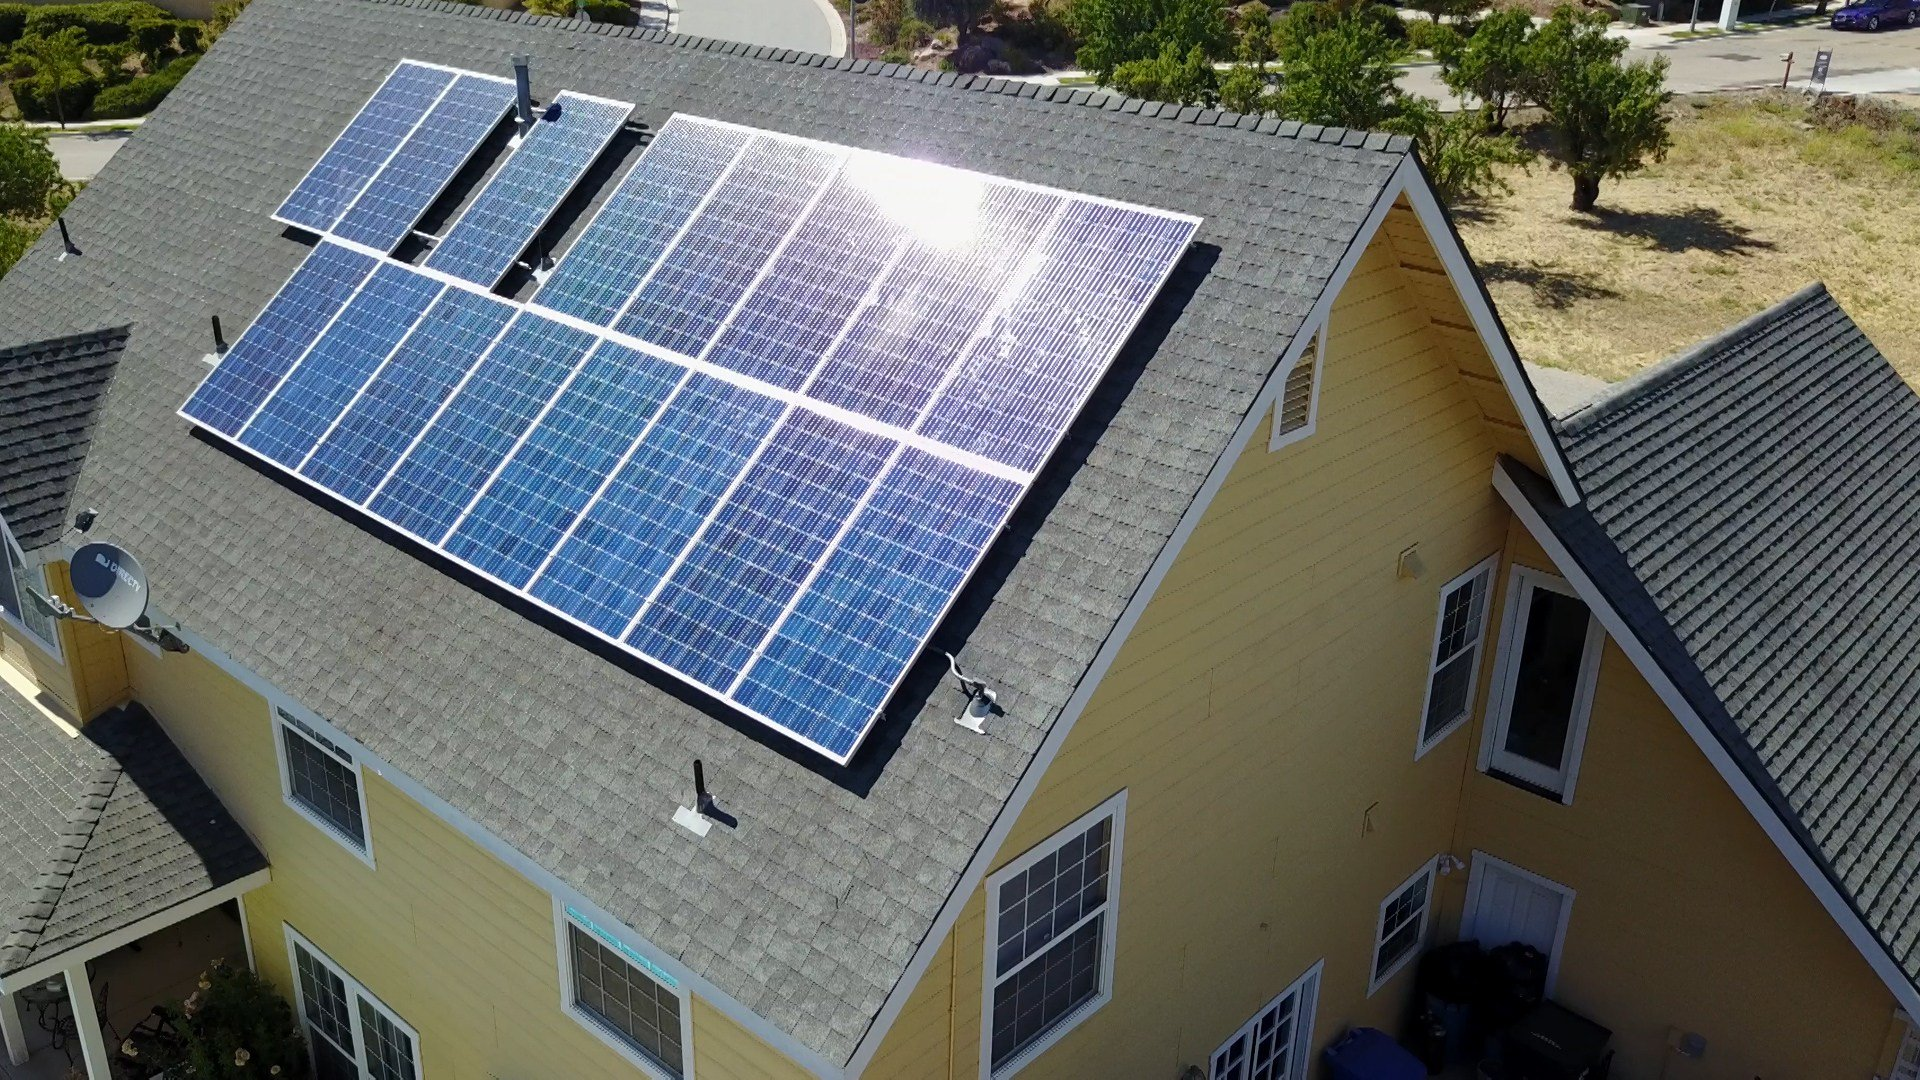 Rooftop Solar Will Make California Homes More Affordable